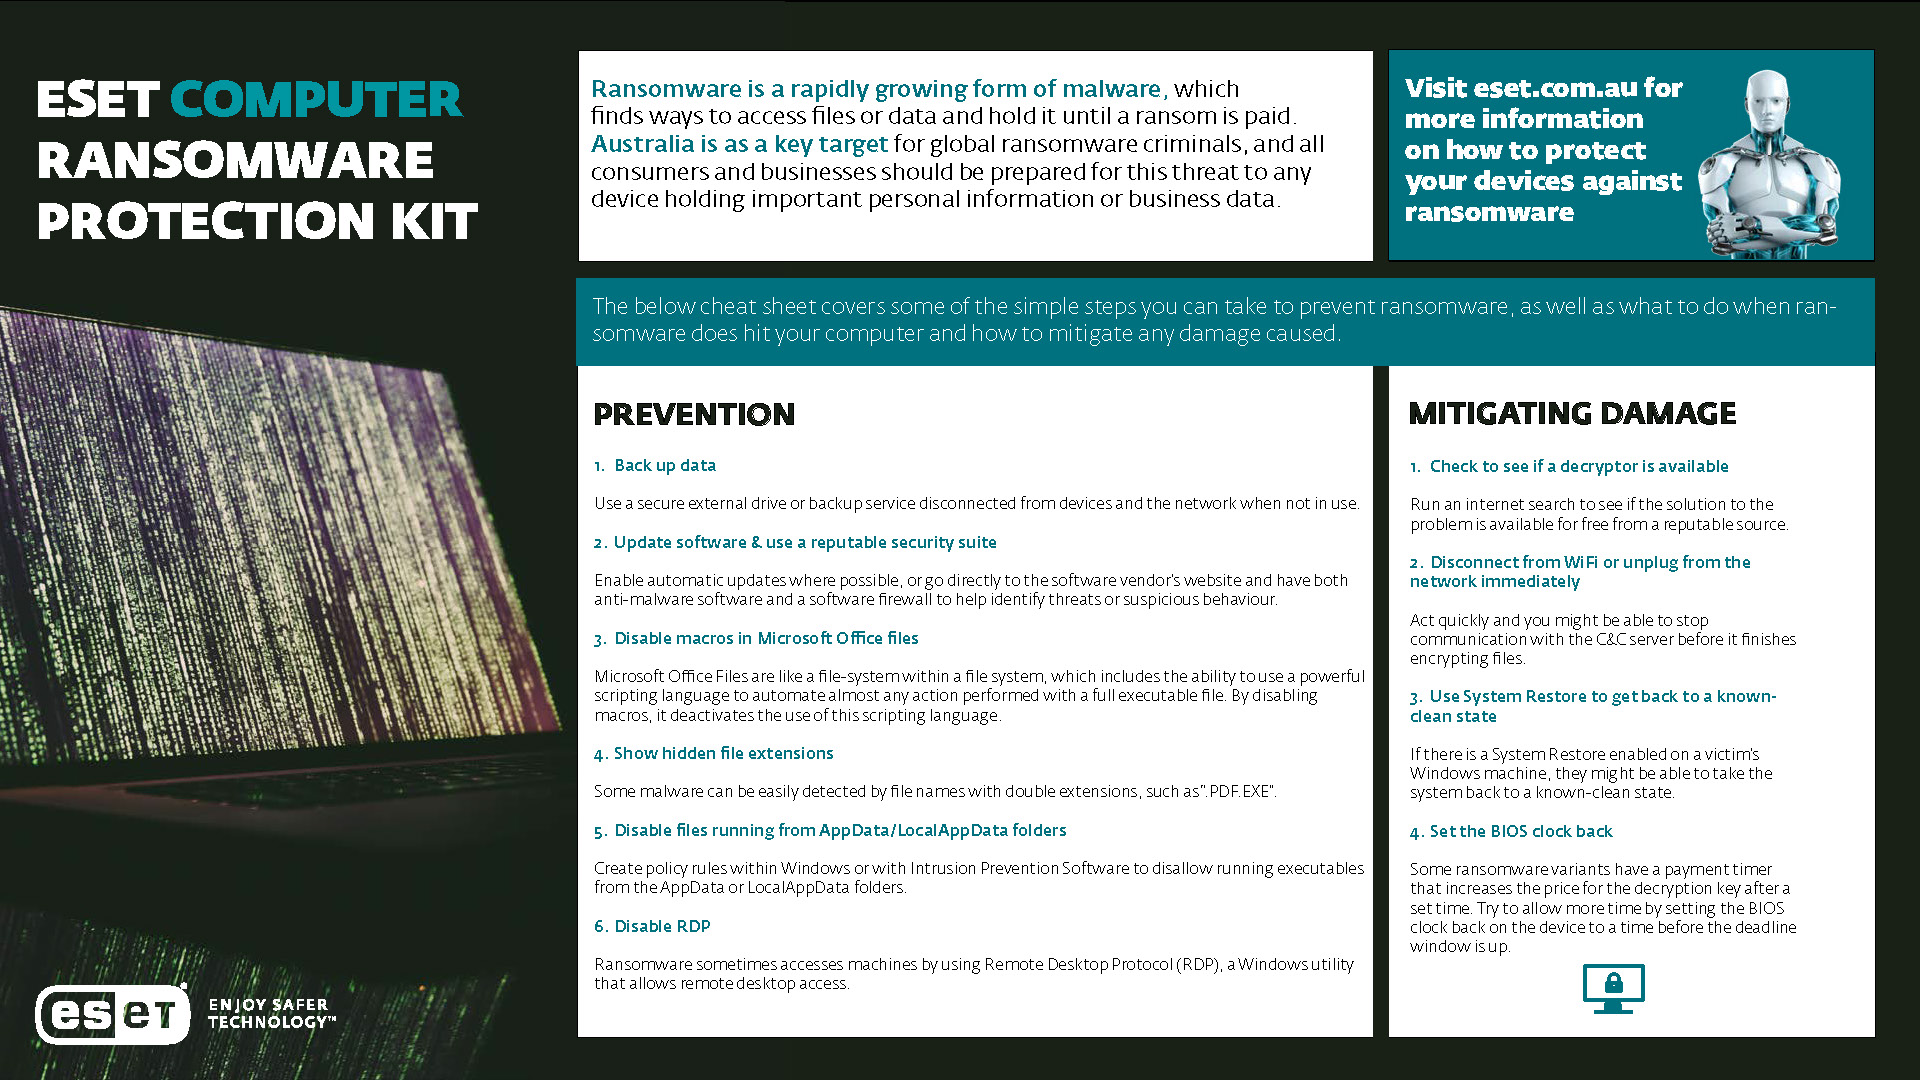 ESET Protection Kit 2 pages_Page_1.jpg